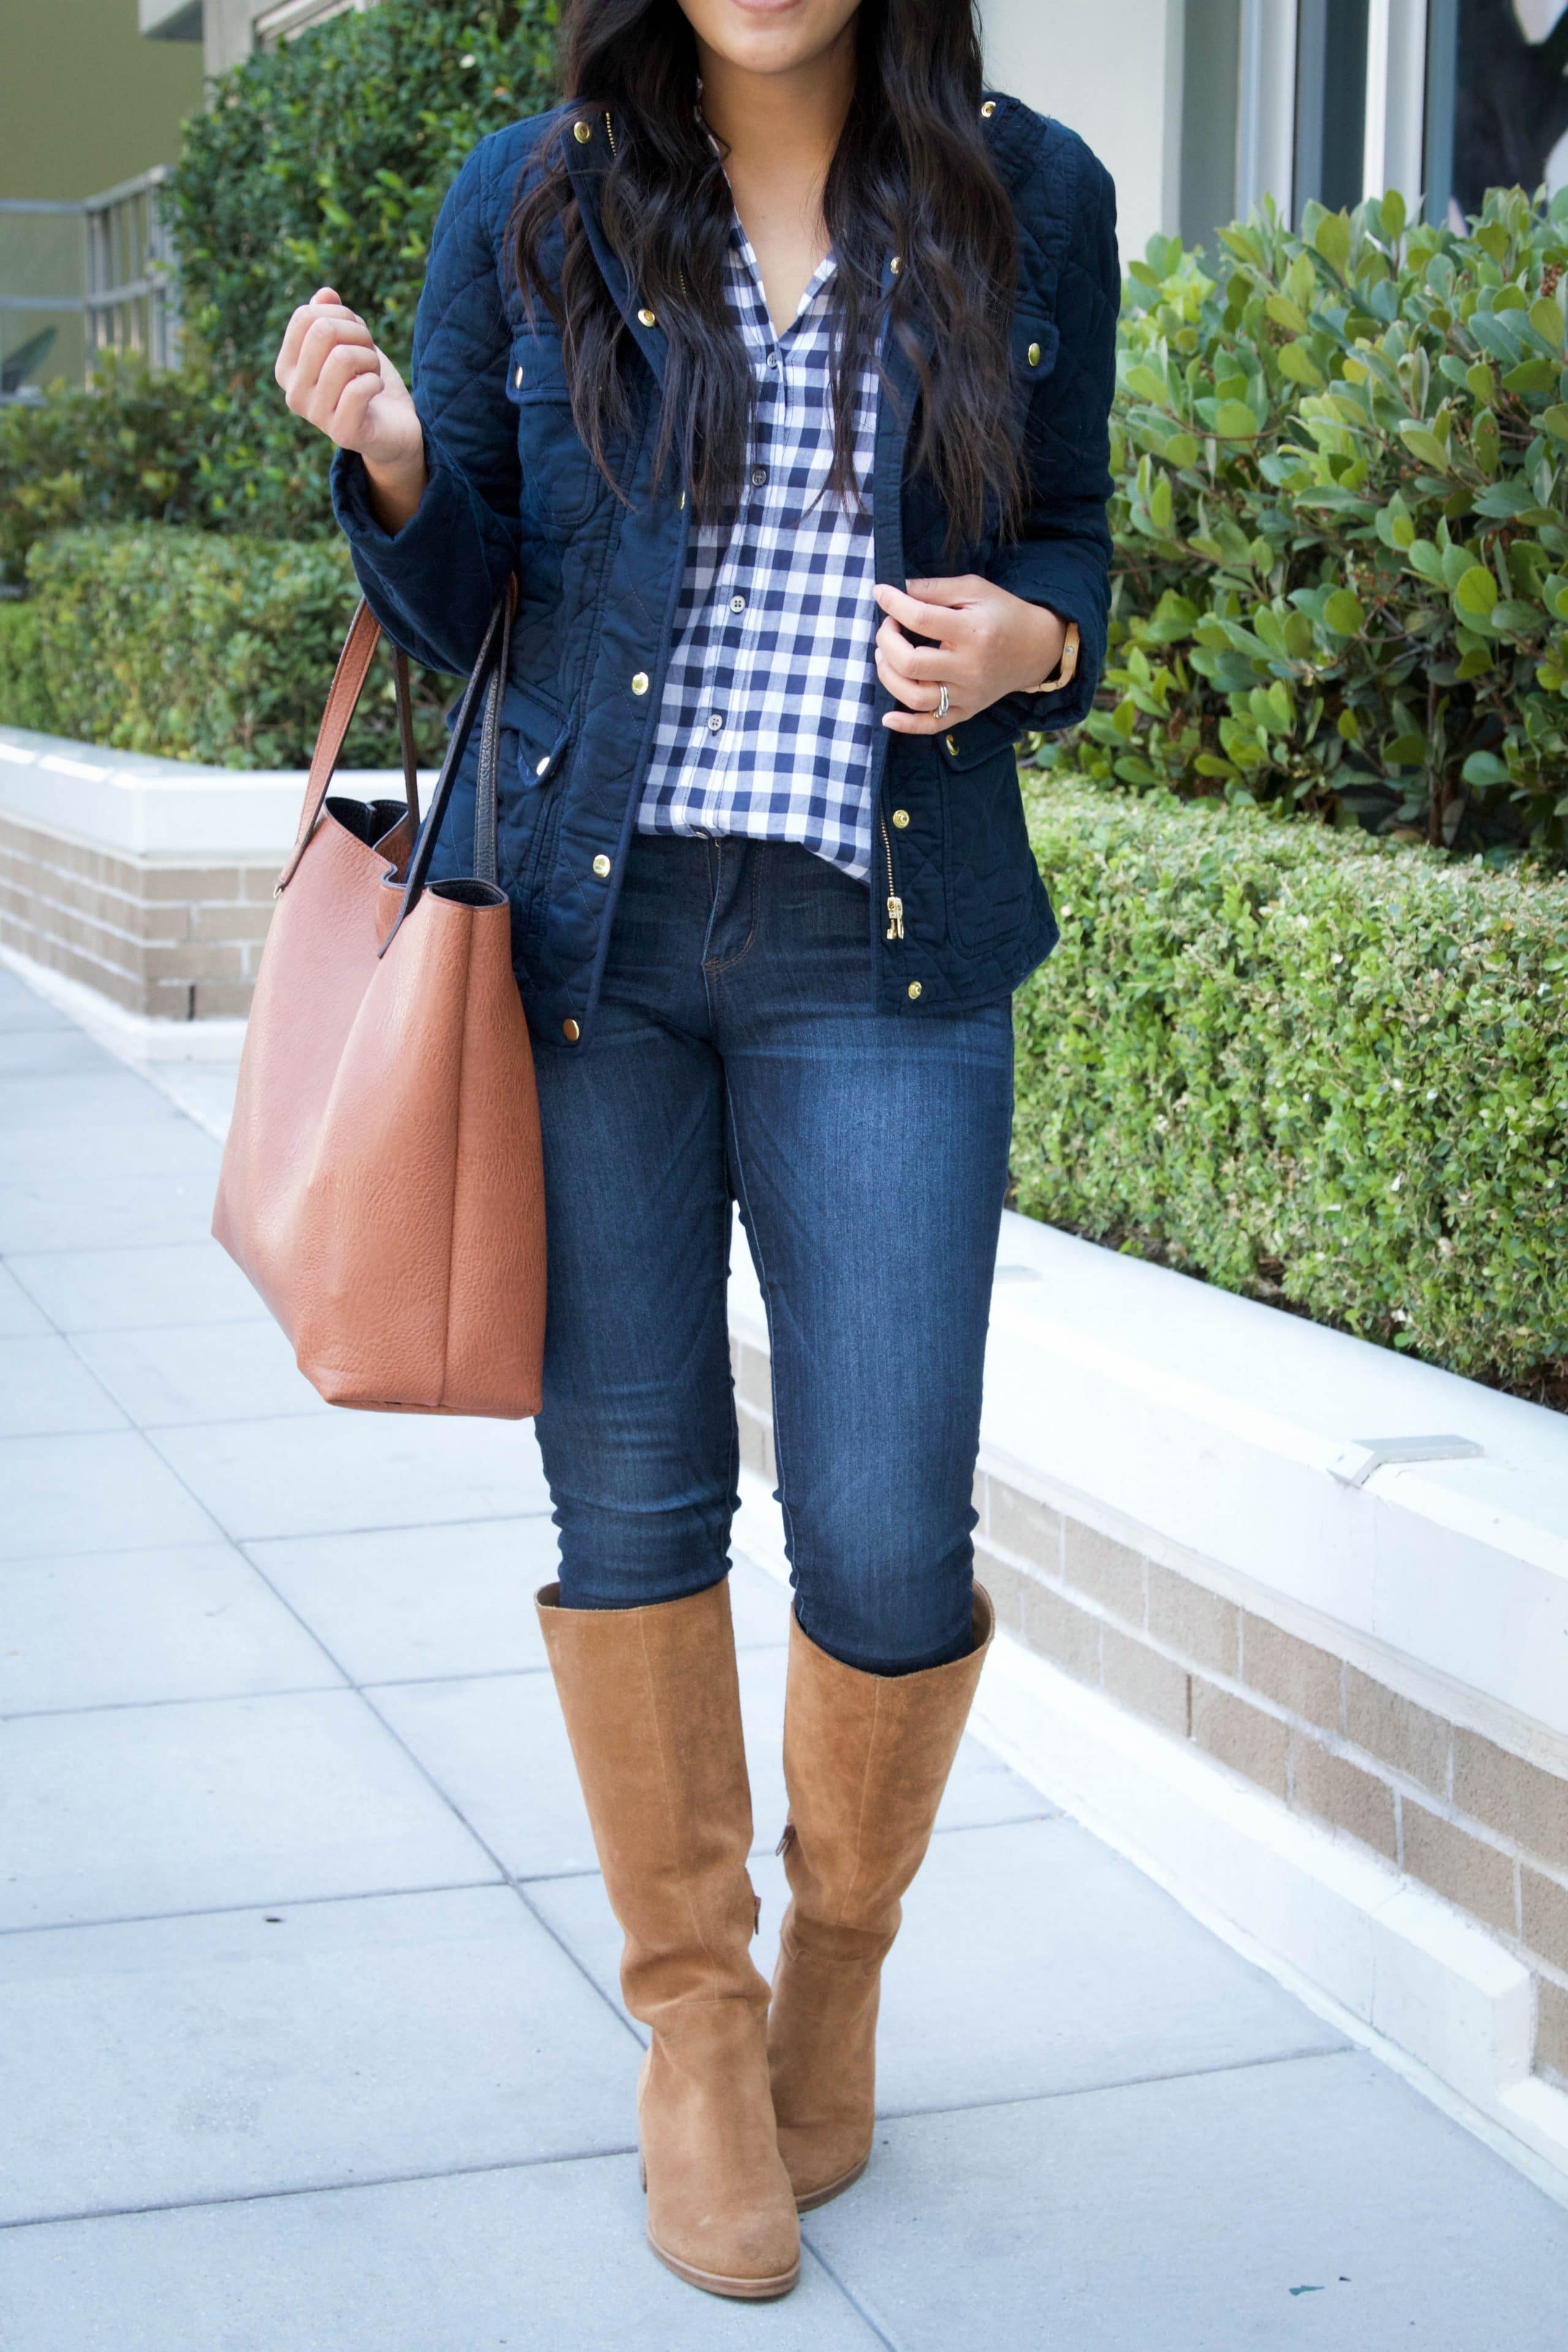 Riding boots + Skinnies + Tote Bag + Quilted Jacket + Gingham Shirt